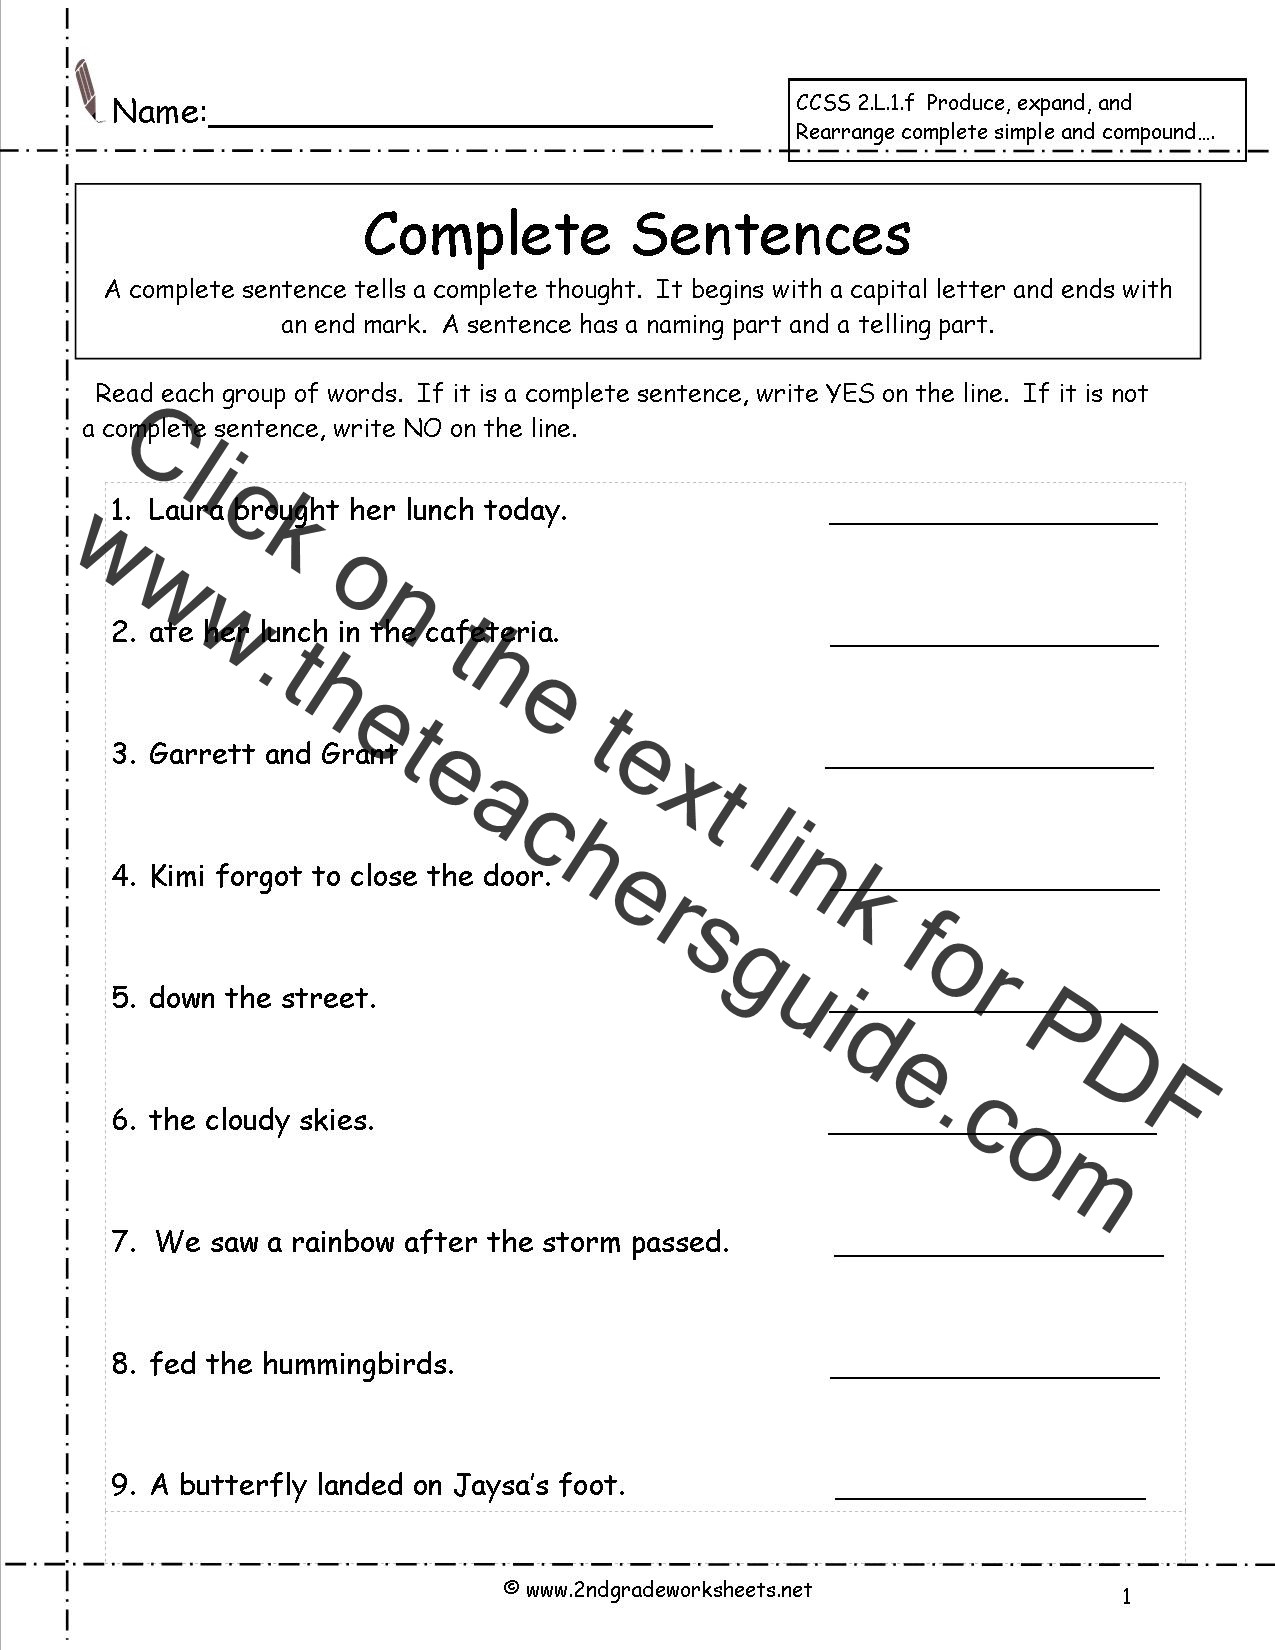 Complete Sentences Worksheets 3rd Grade Second Grade Sentences Worksheets Ccss 2 L 1 F Worksheets